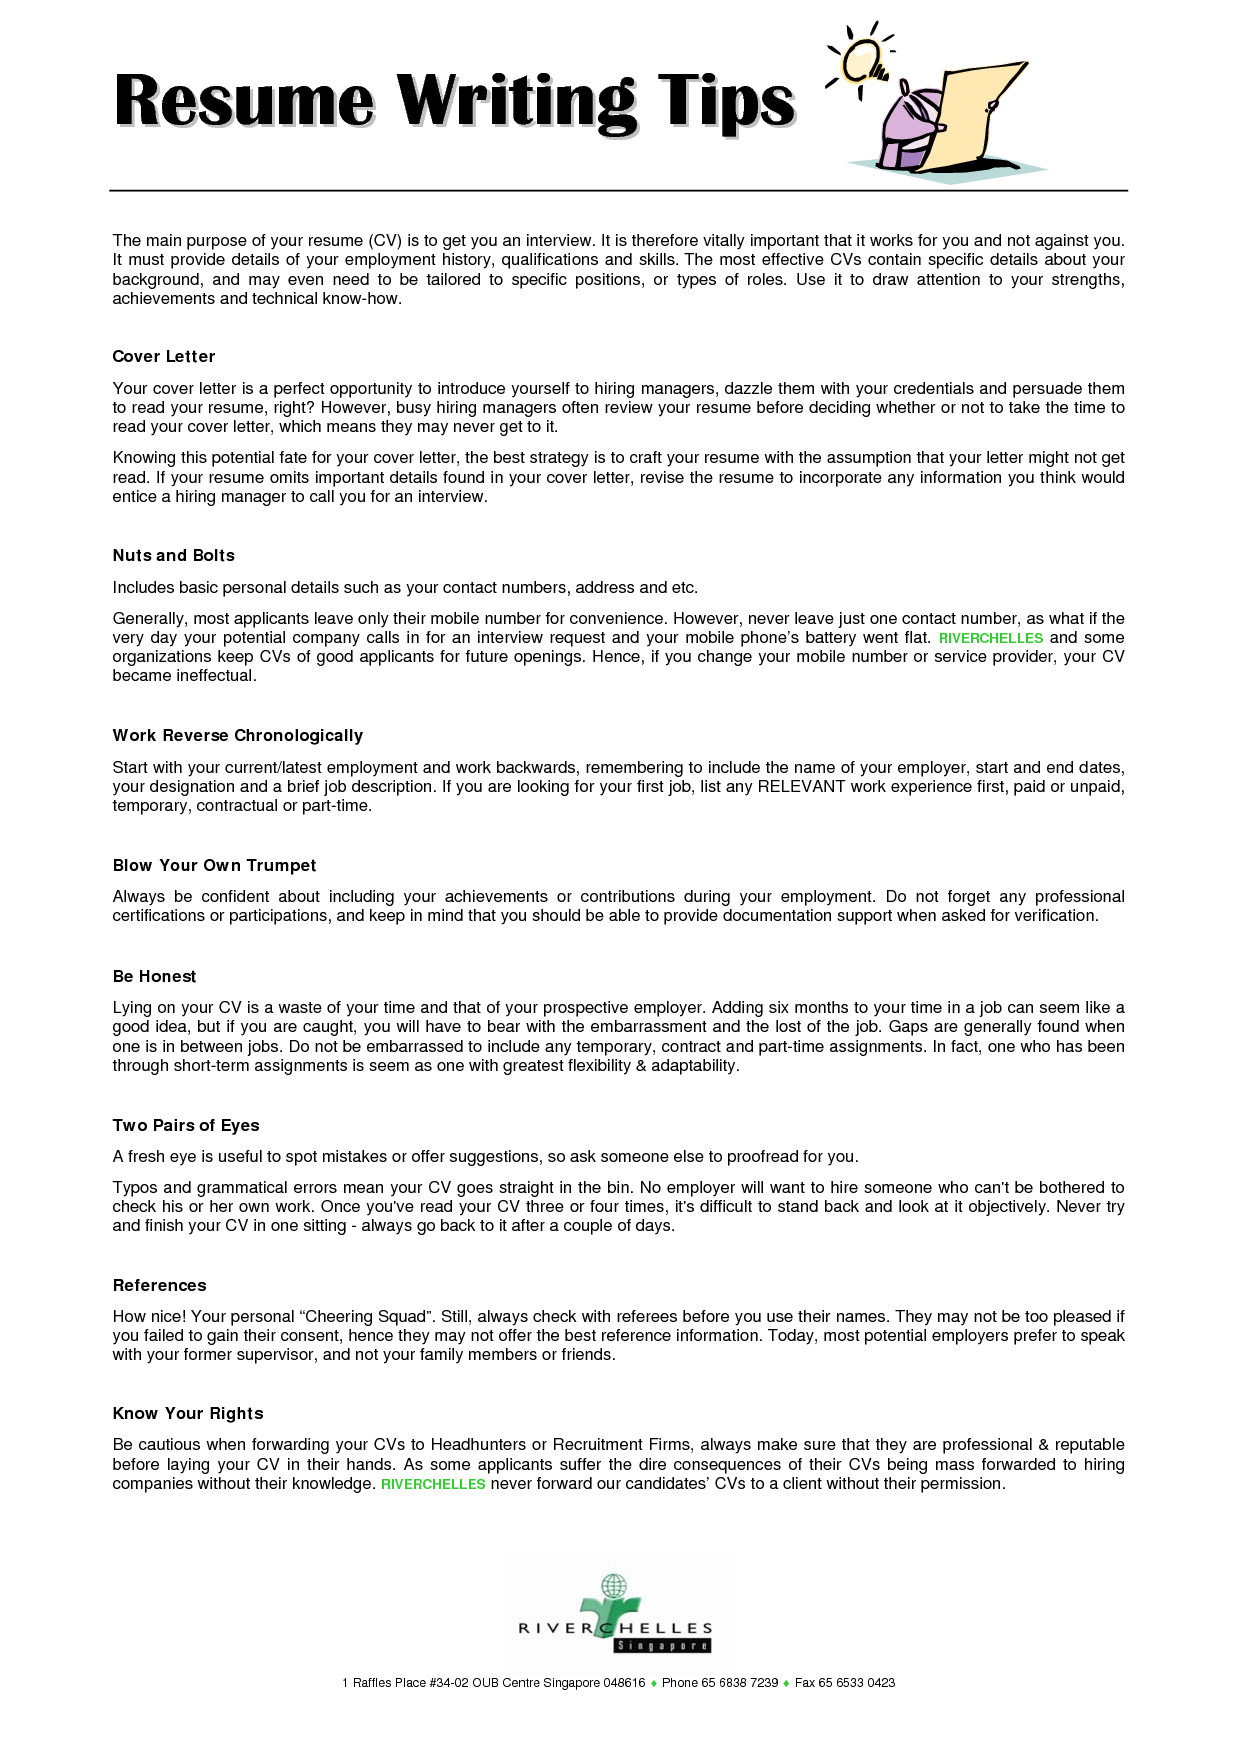 Lovely Resume Writing Tips Within Resume Hints